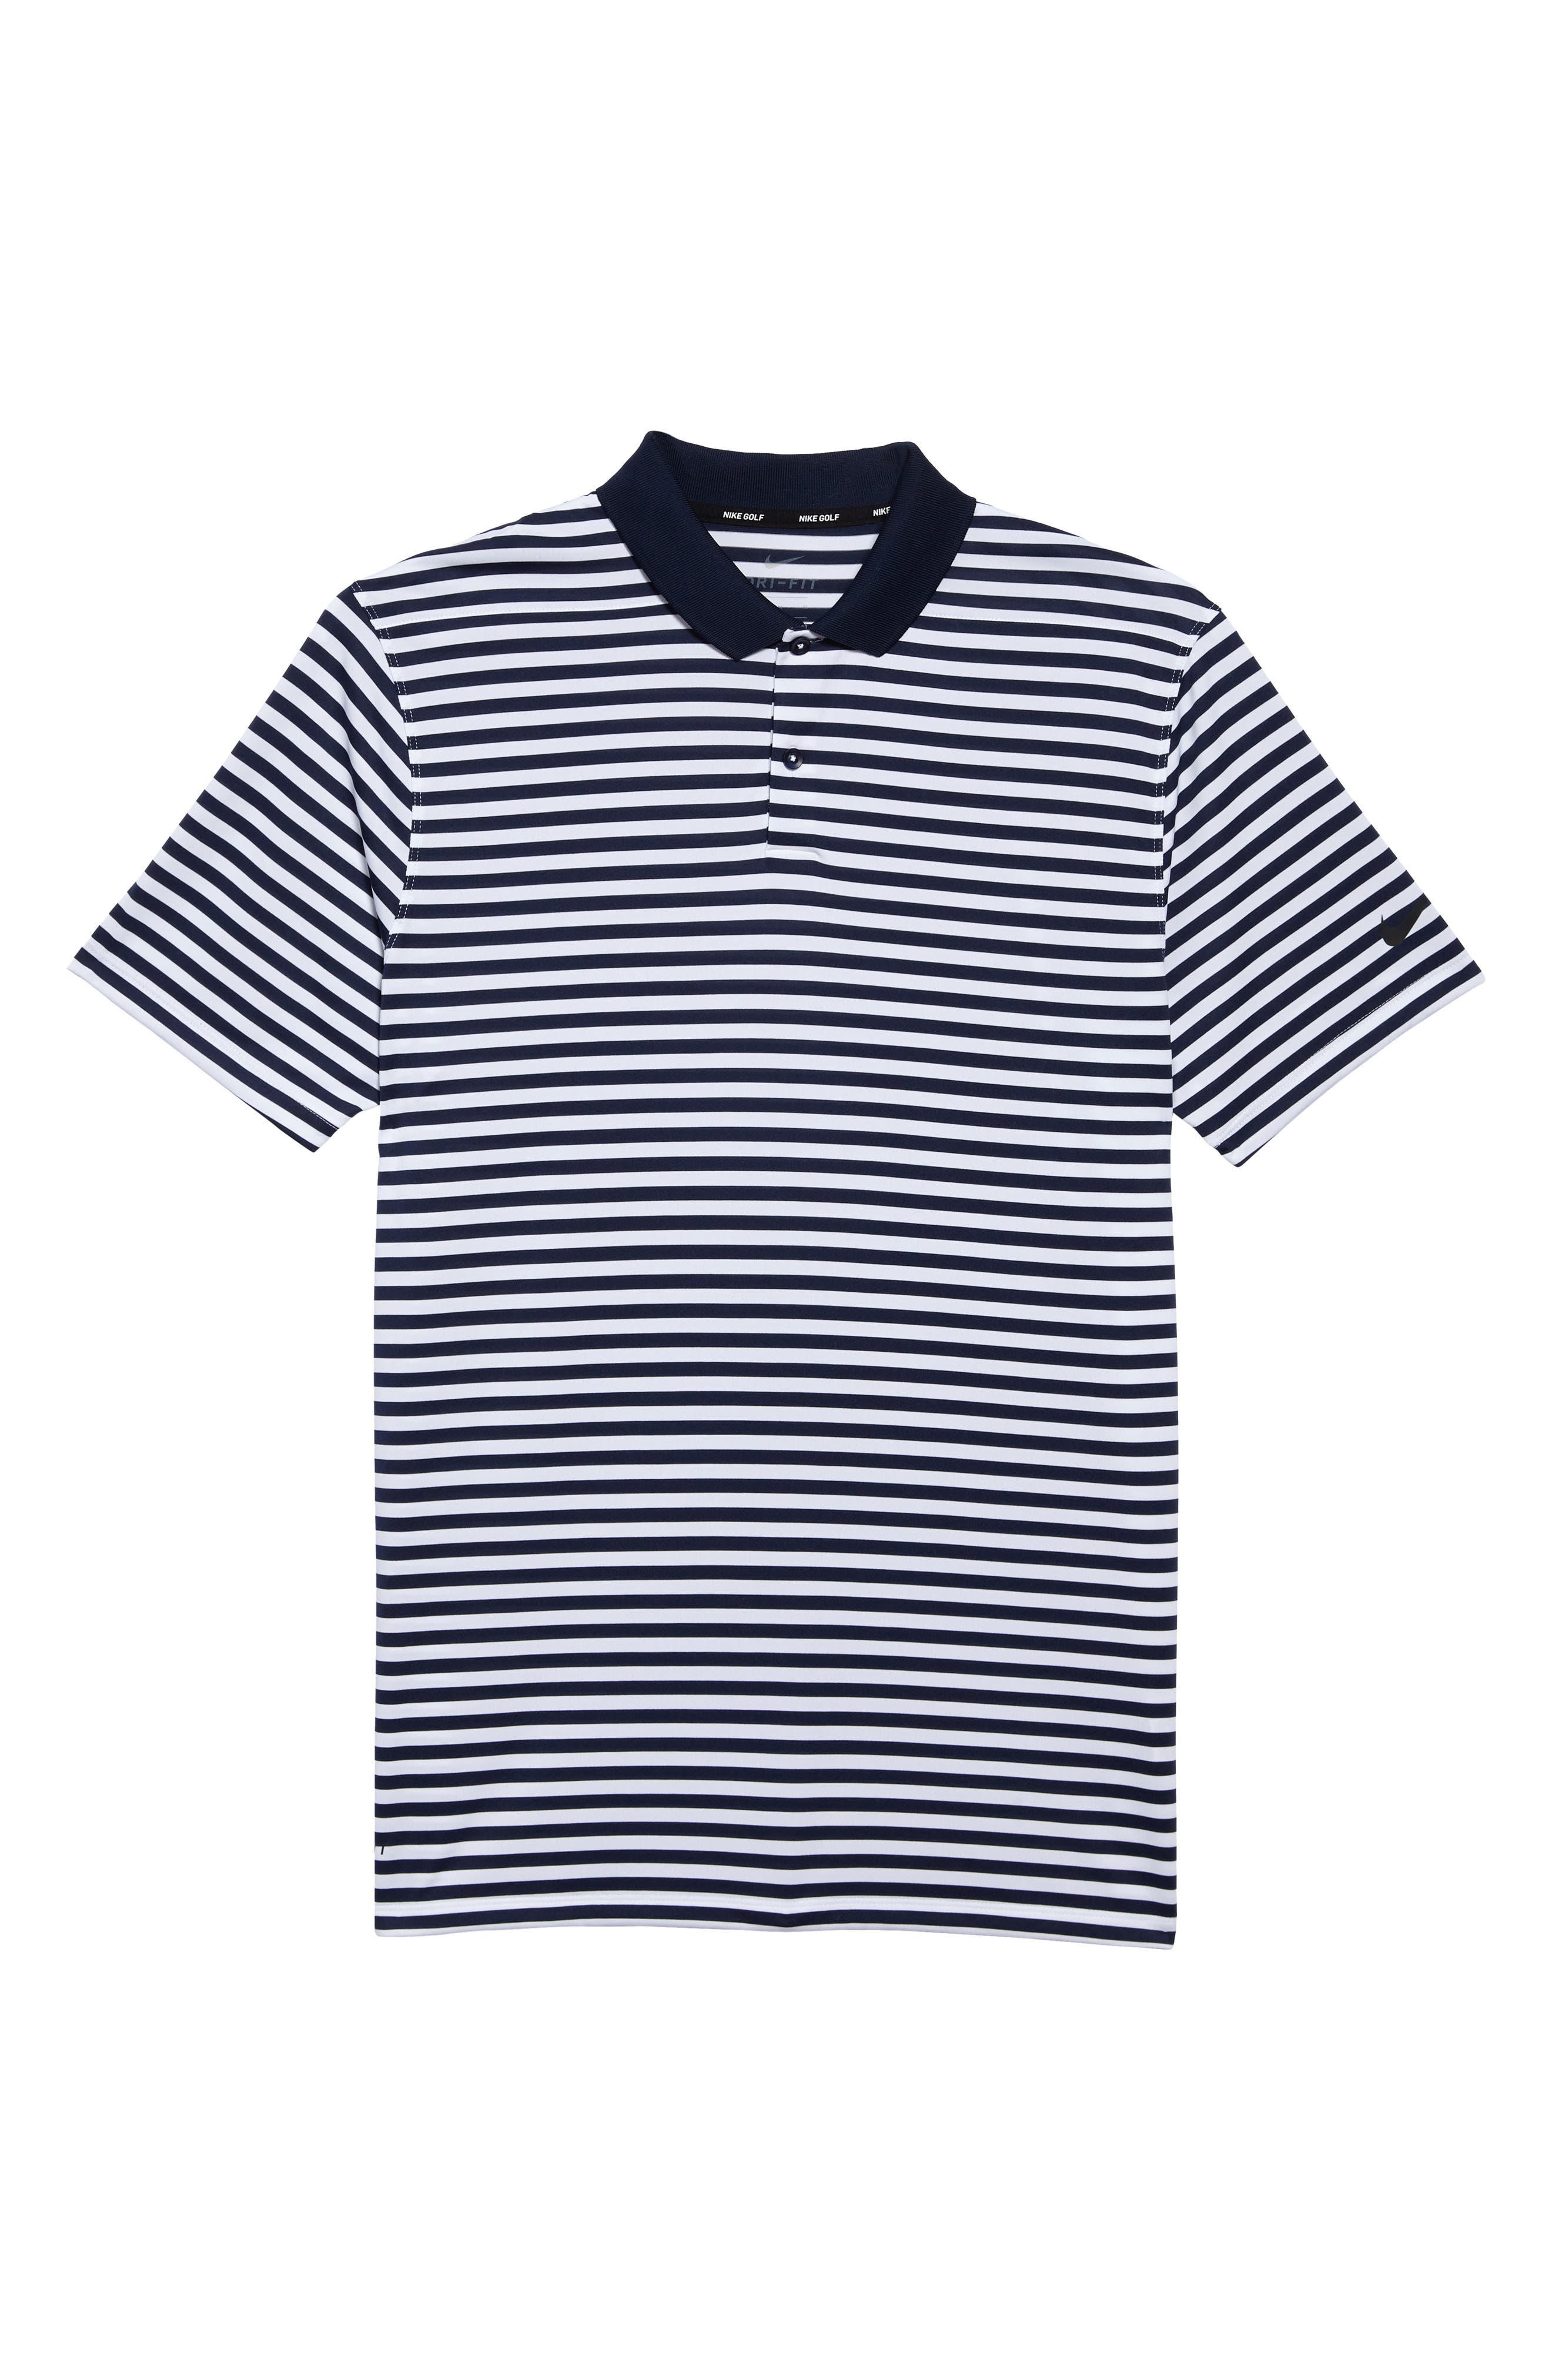 Dry Victory Stripe Golf Polo,                             Alternate thumbnail 6, color,                             College Navy/ White/ Black